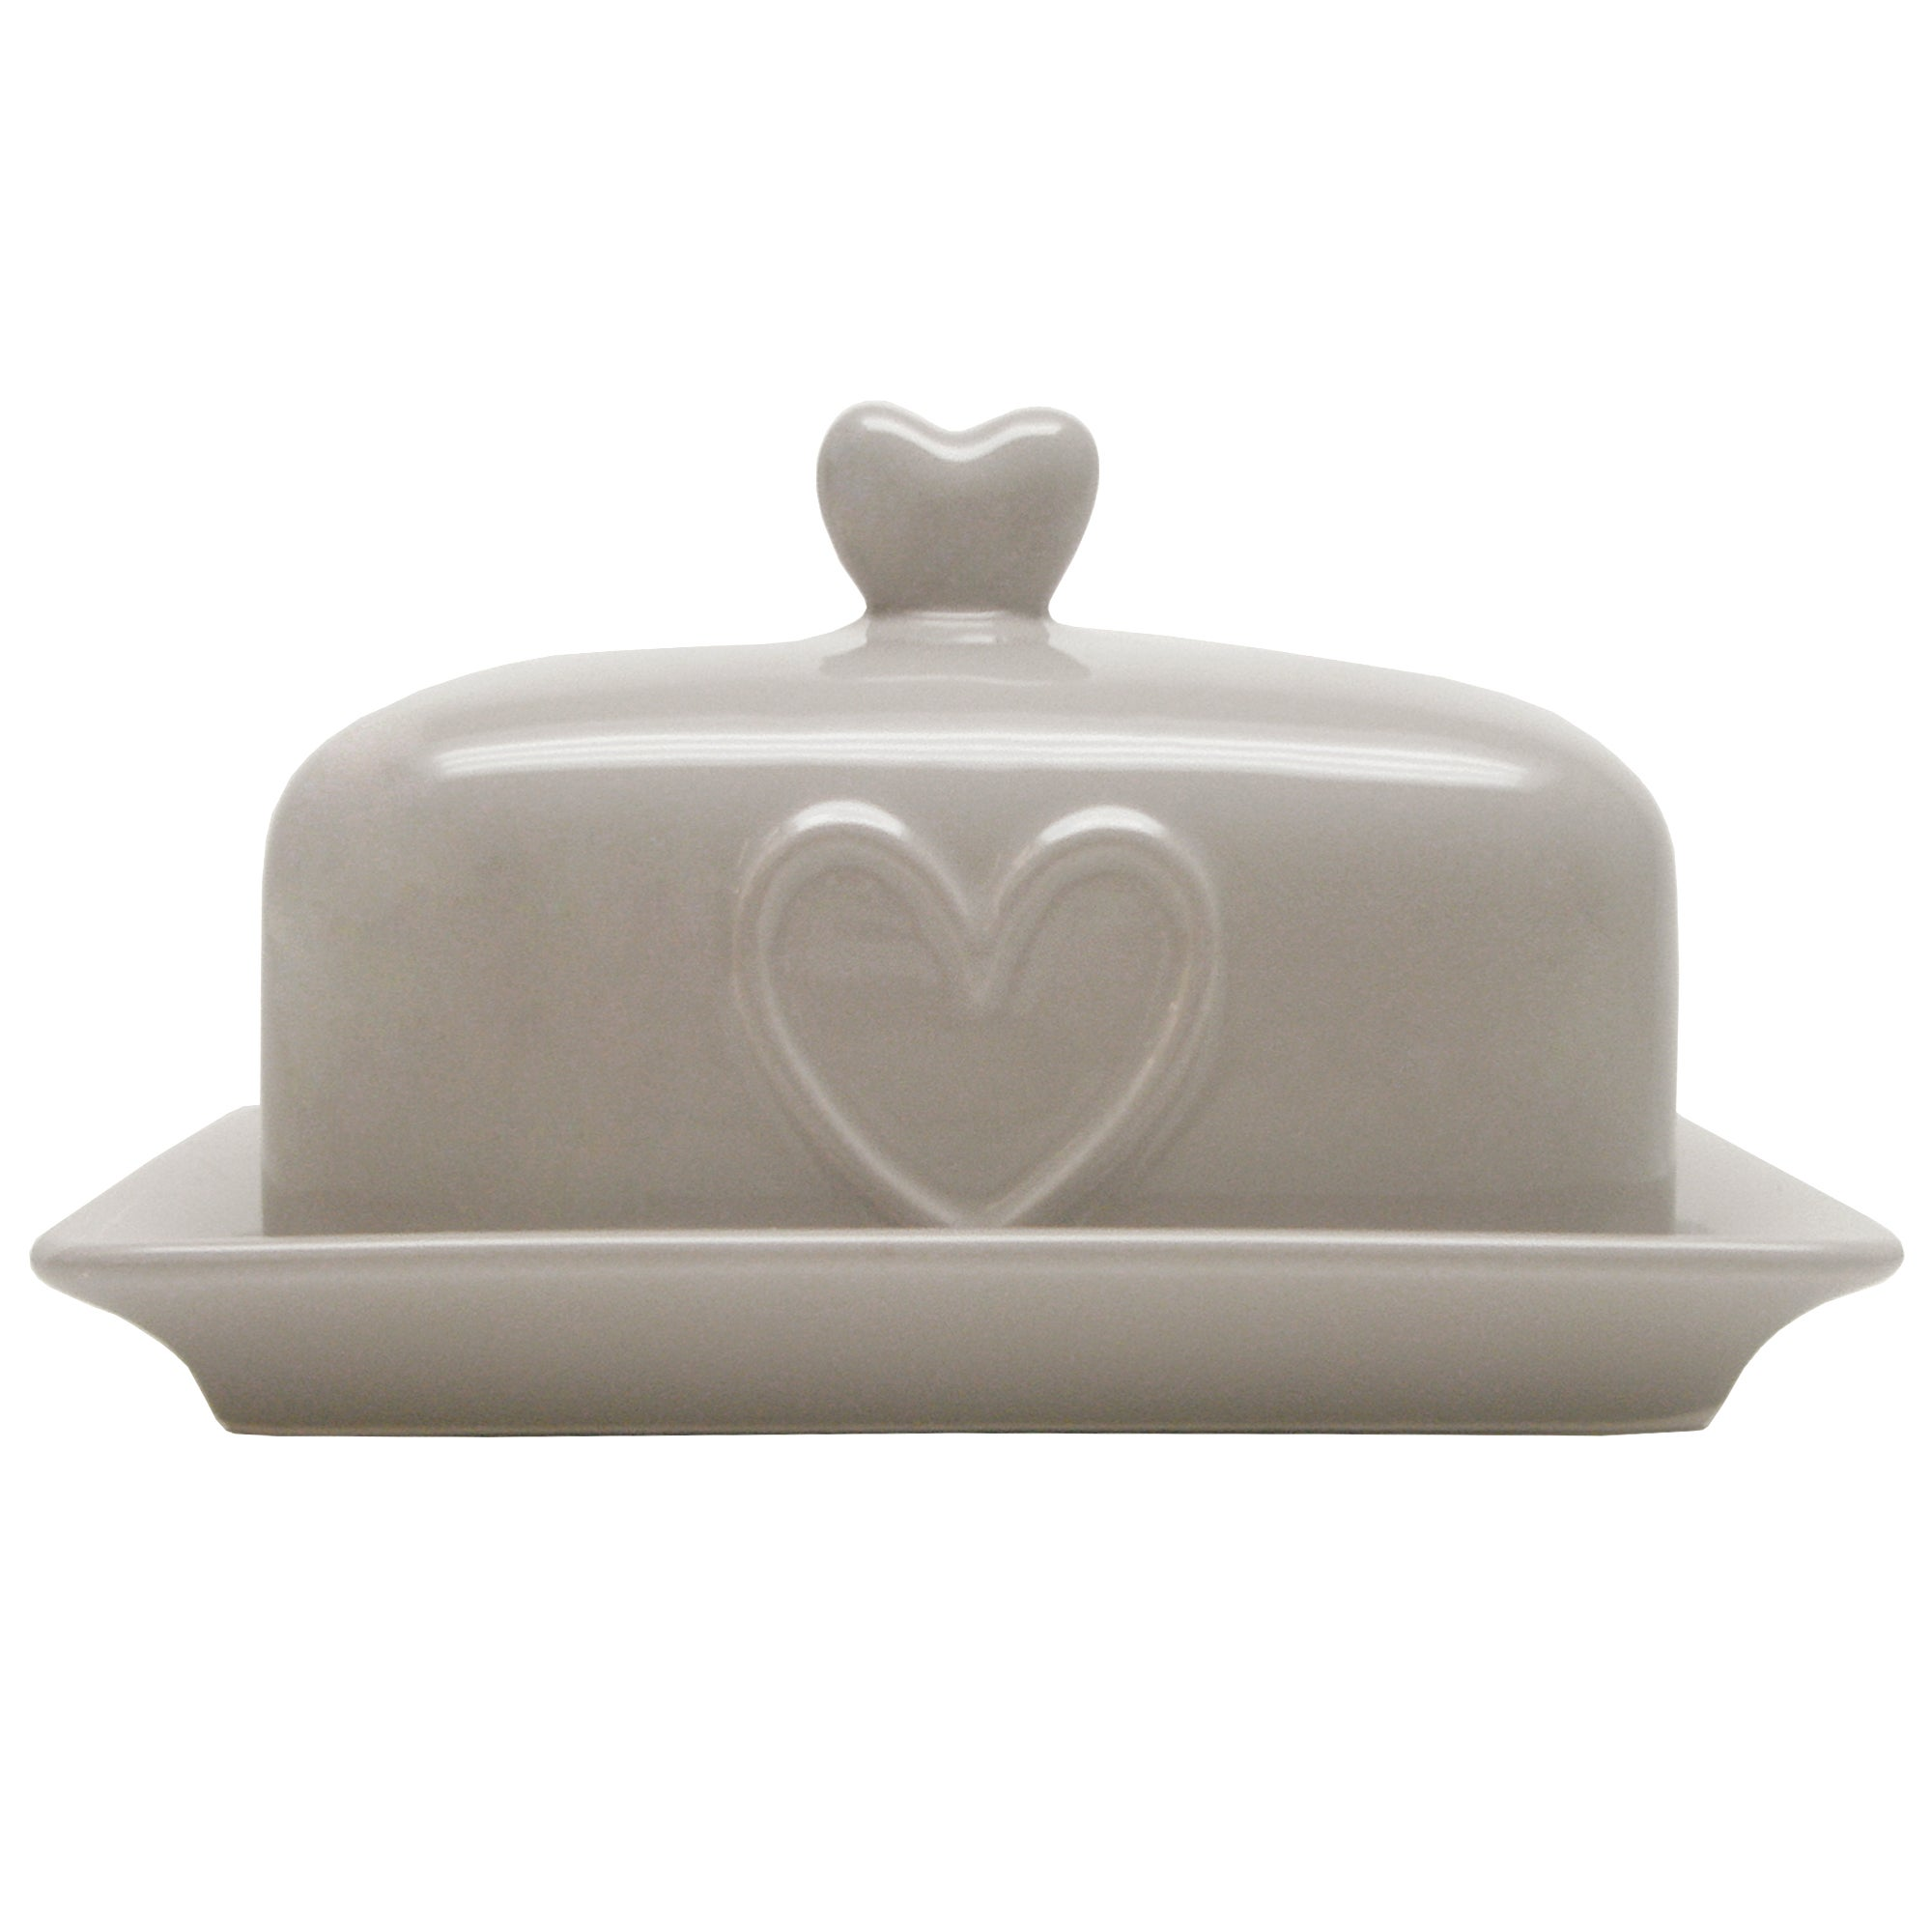 Country Taupe Heart Butter Dish Taupe